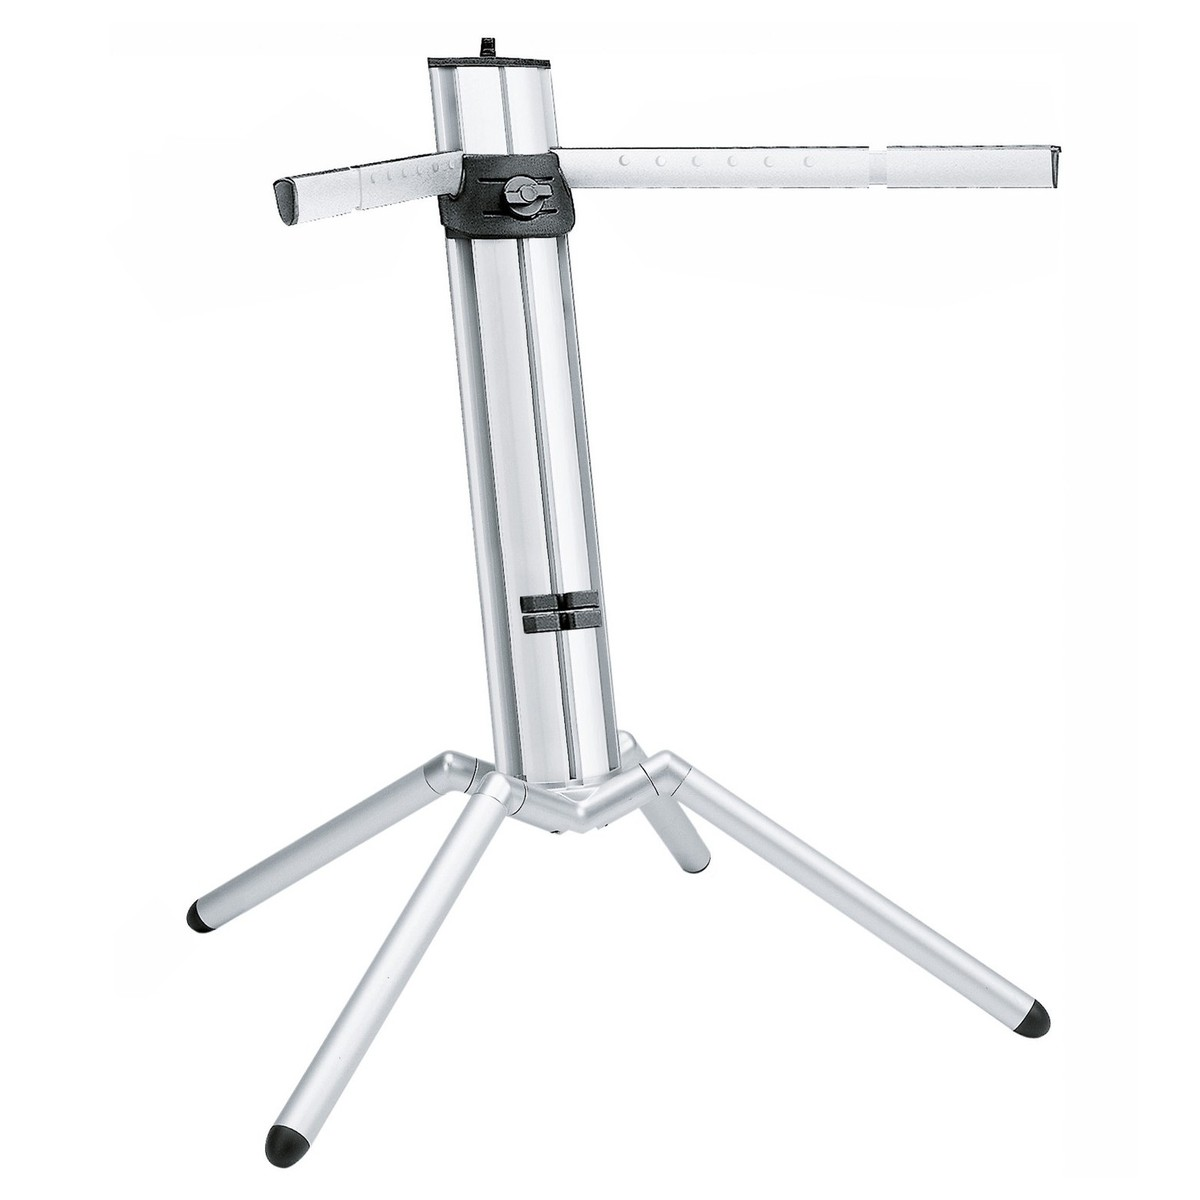 k m 18840 baby spider pro keyboard stand aluminium at gear4music. Black Bedroom Furniture Sets. Home Design Ideas